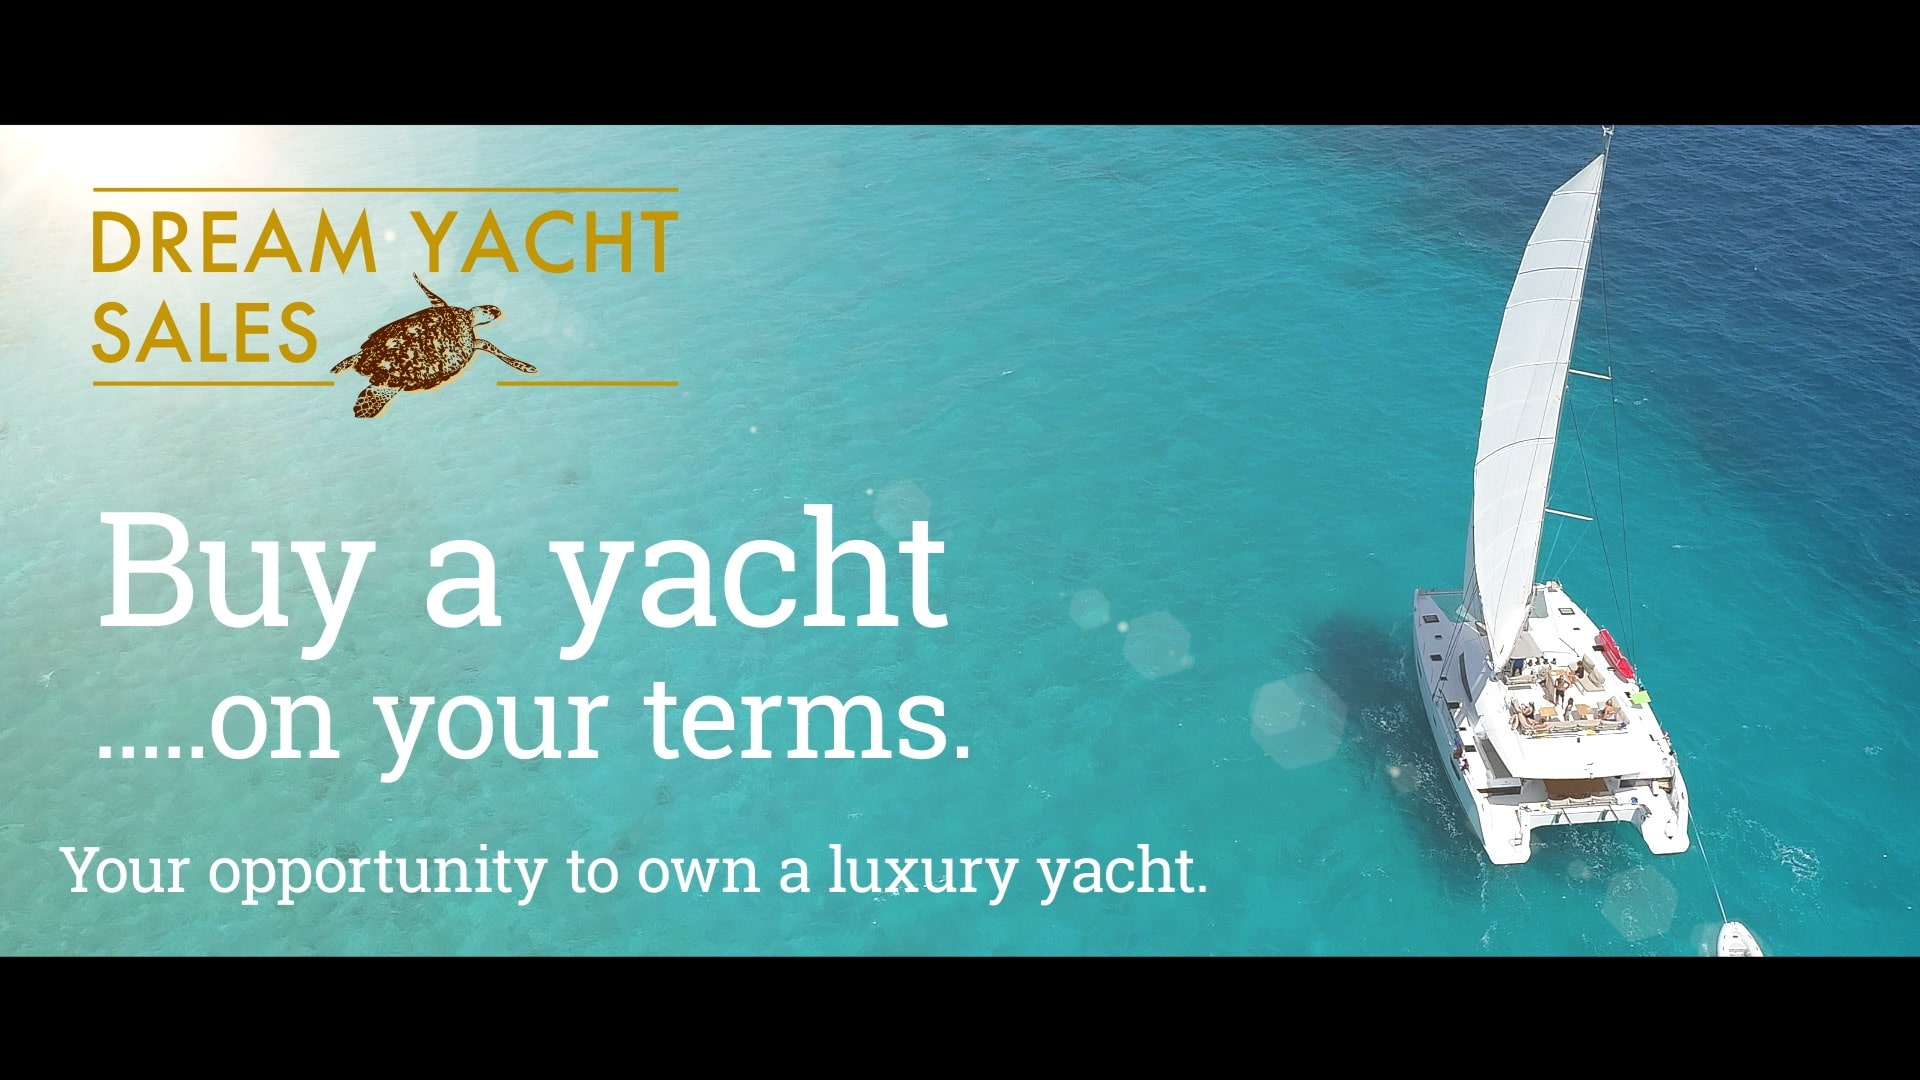 Yacht Sales Video for Dreams